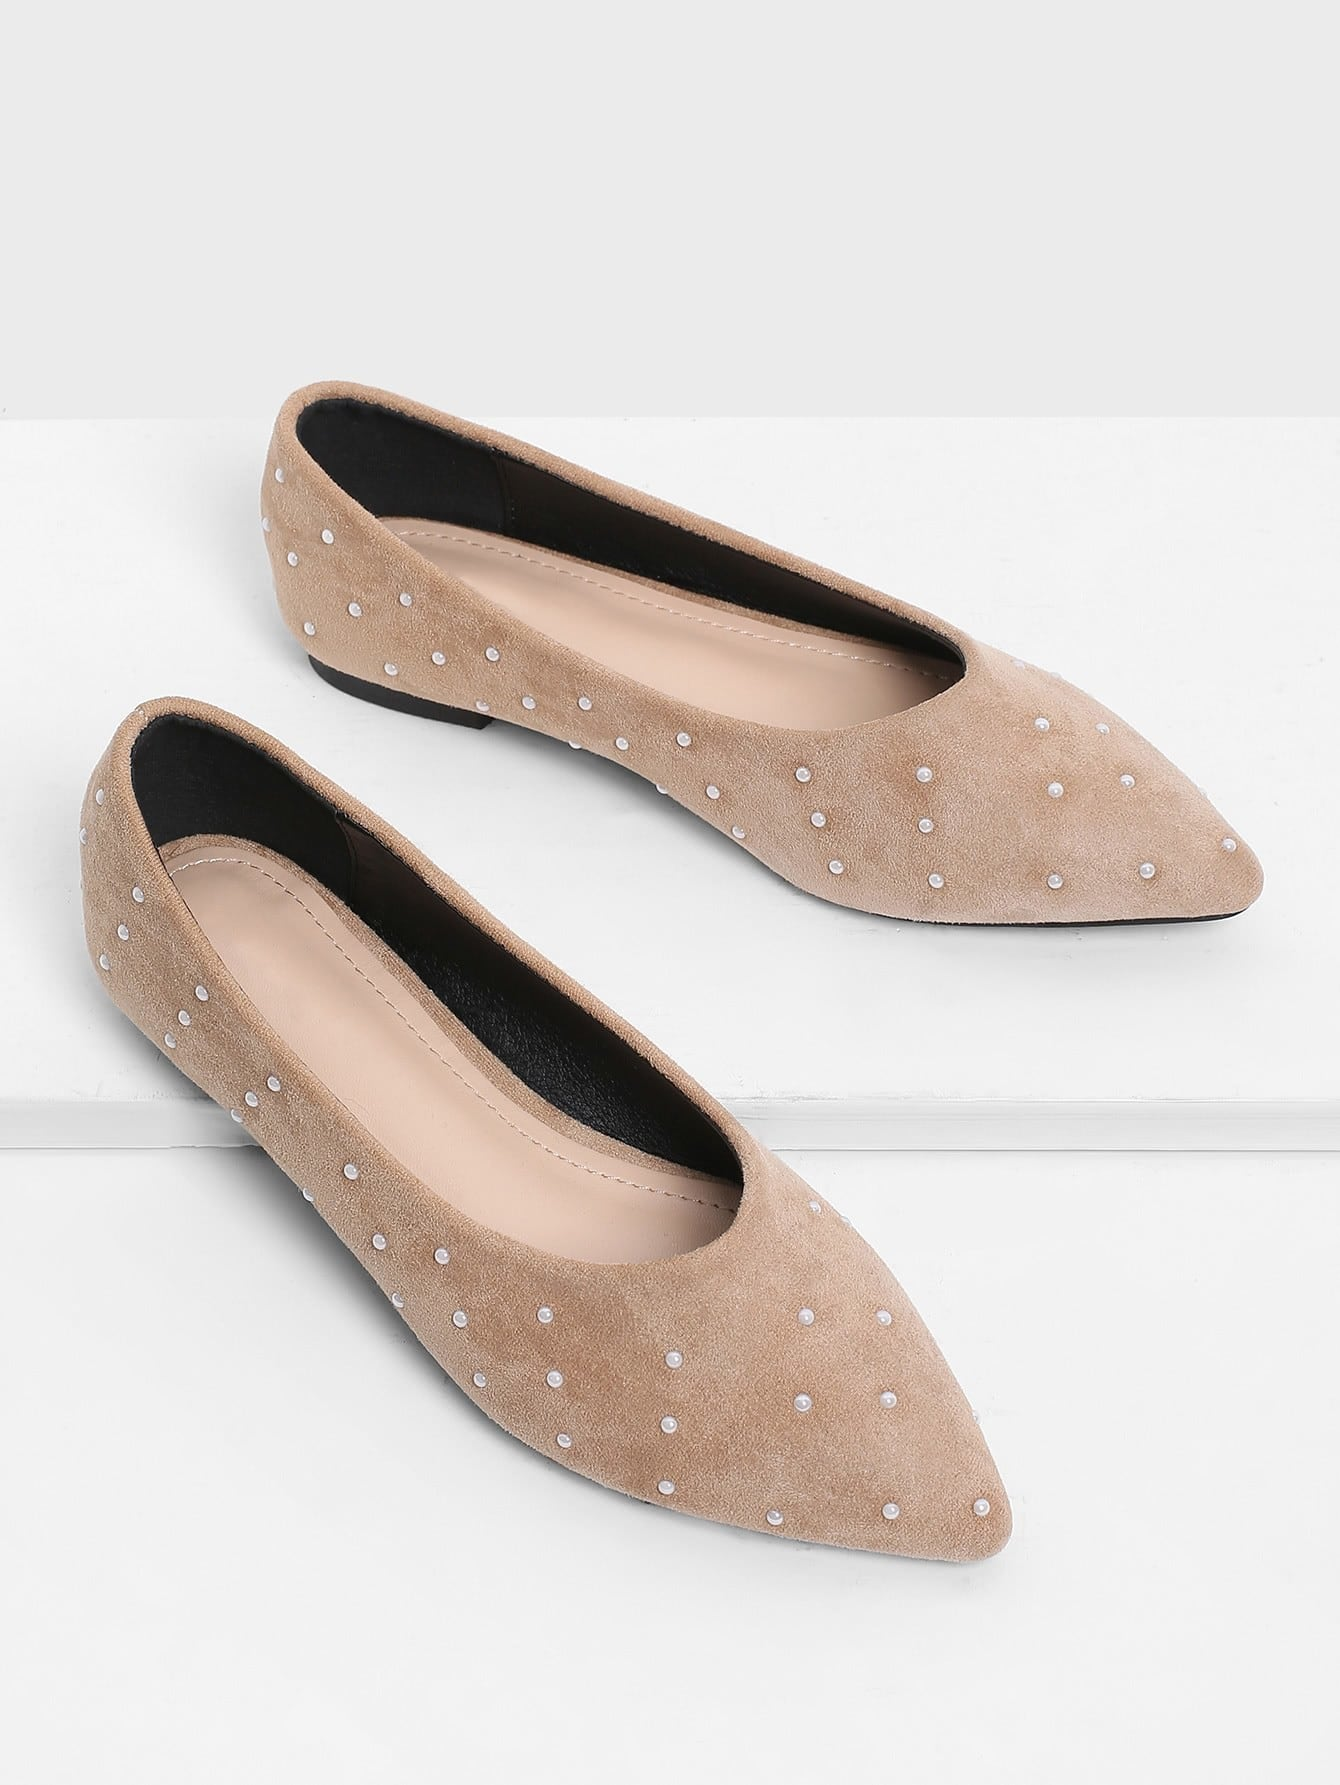 Faux Pearl Decorated Pointed Toe Flats полотенцесушитель energy u g3 770x635